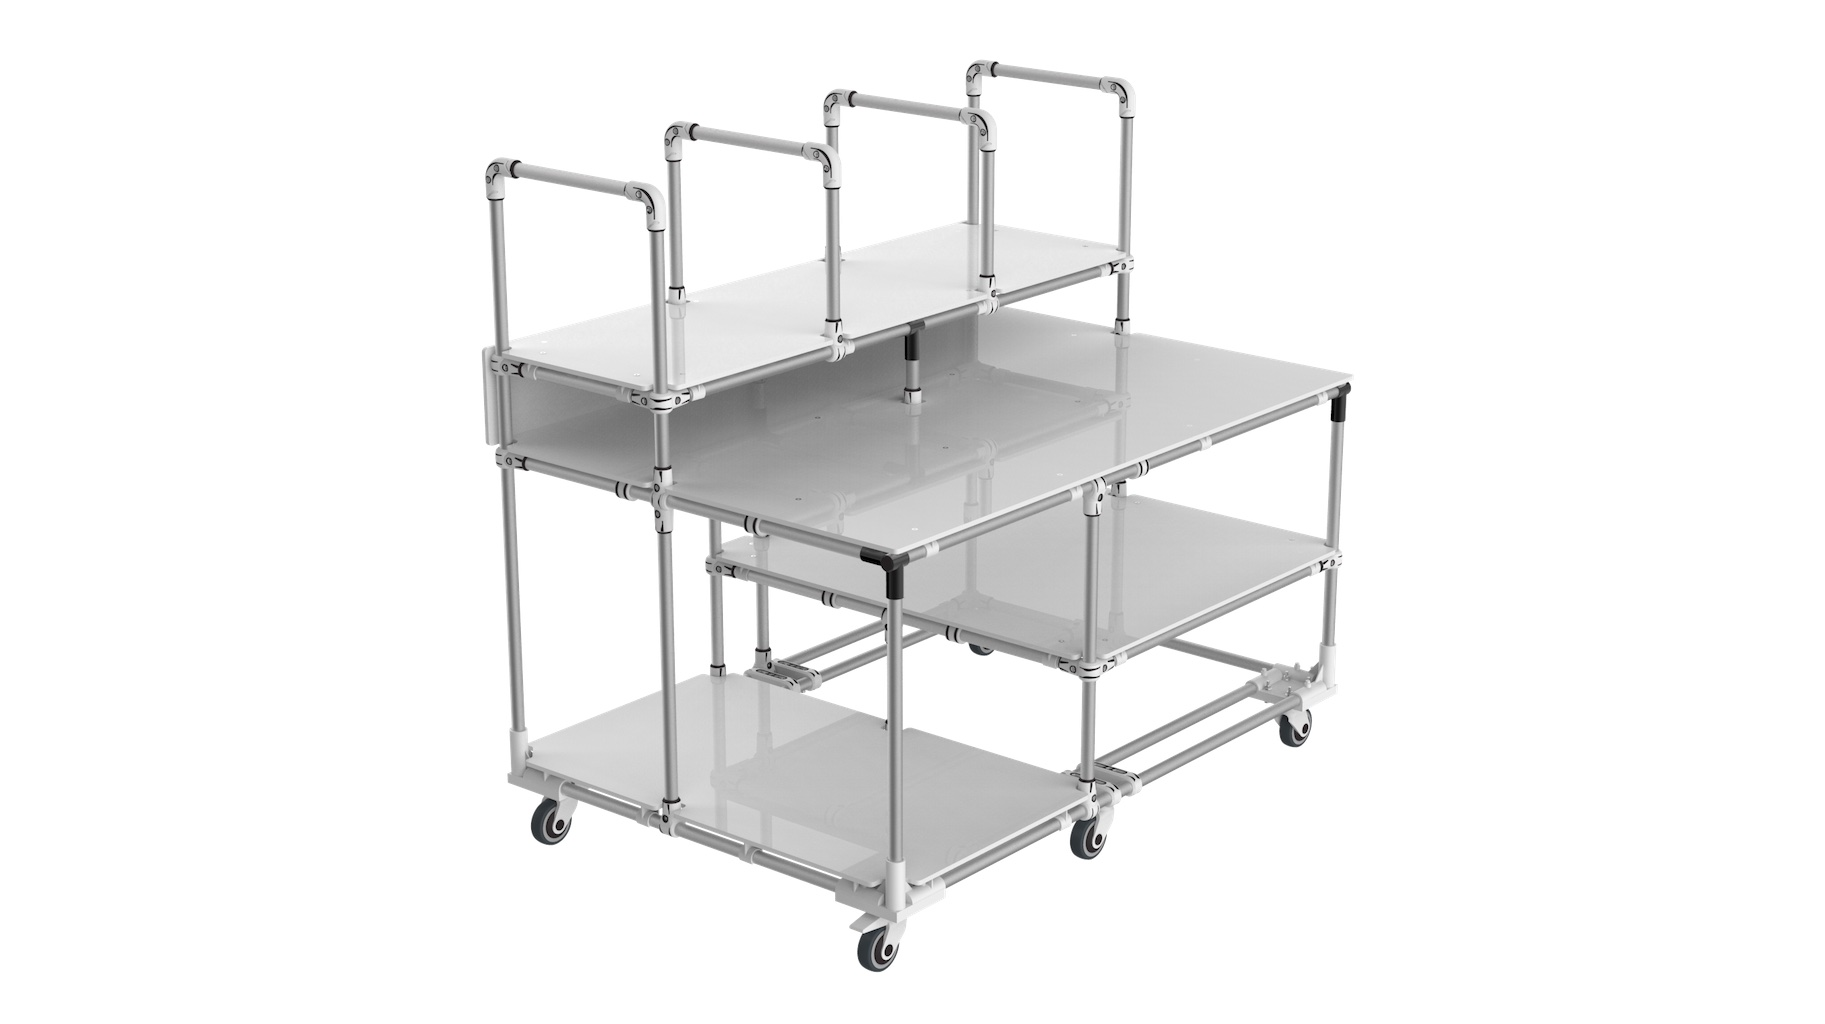 - Bespoke mobile workbench for cartons forming integrating 2 functions: vertical storage on upper level with transport and storage on lower level.